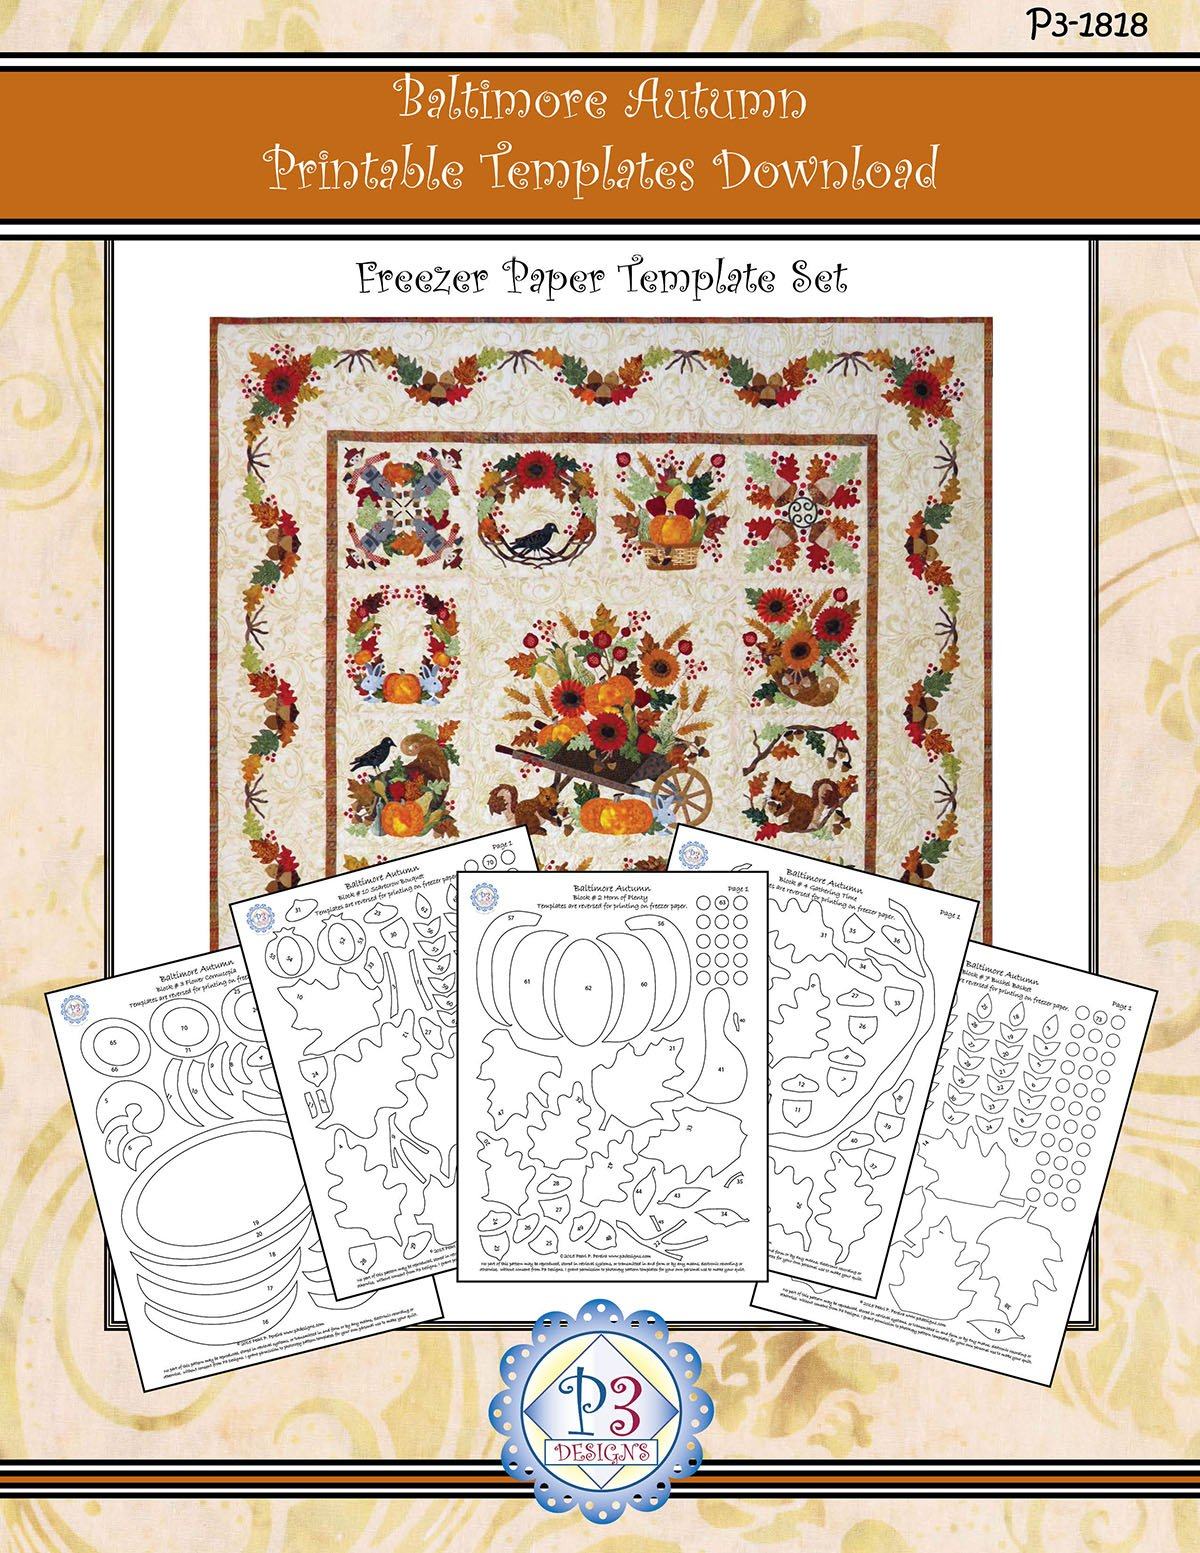 P3-1818 Baltimore Autumn Template Only PDF Download Set